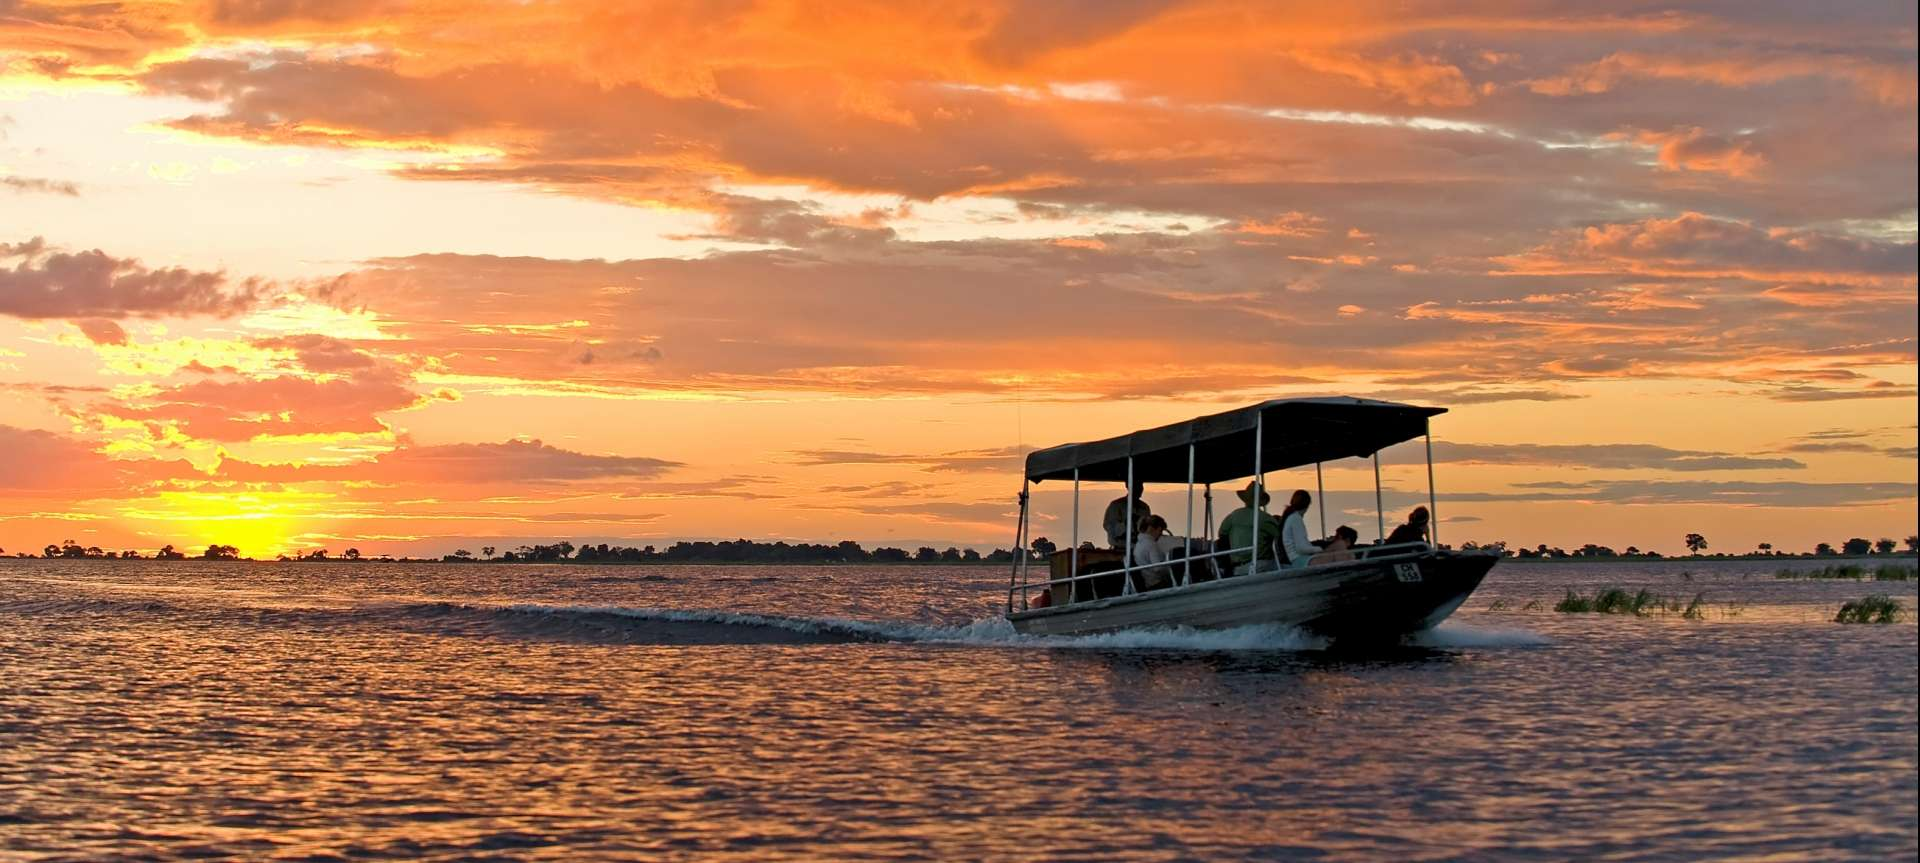 A boat cruise on the Chobe river is a magical experience